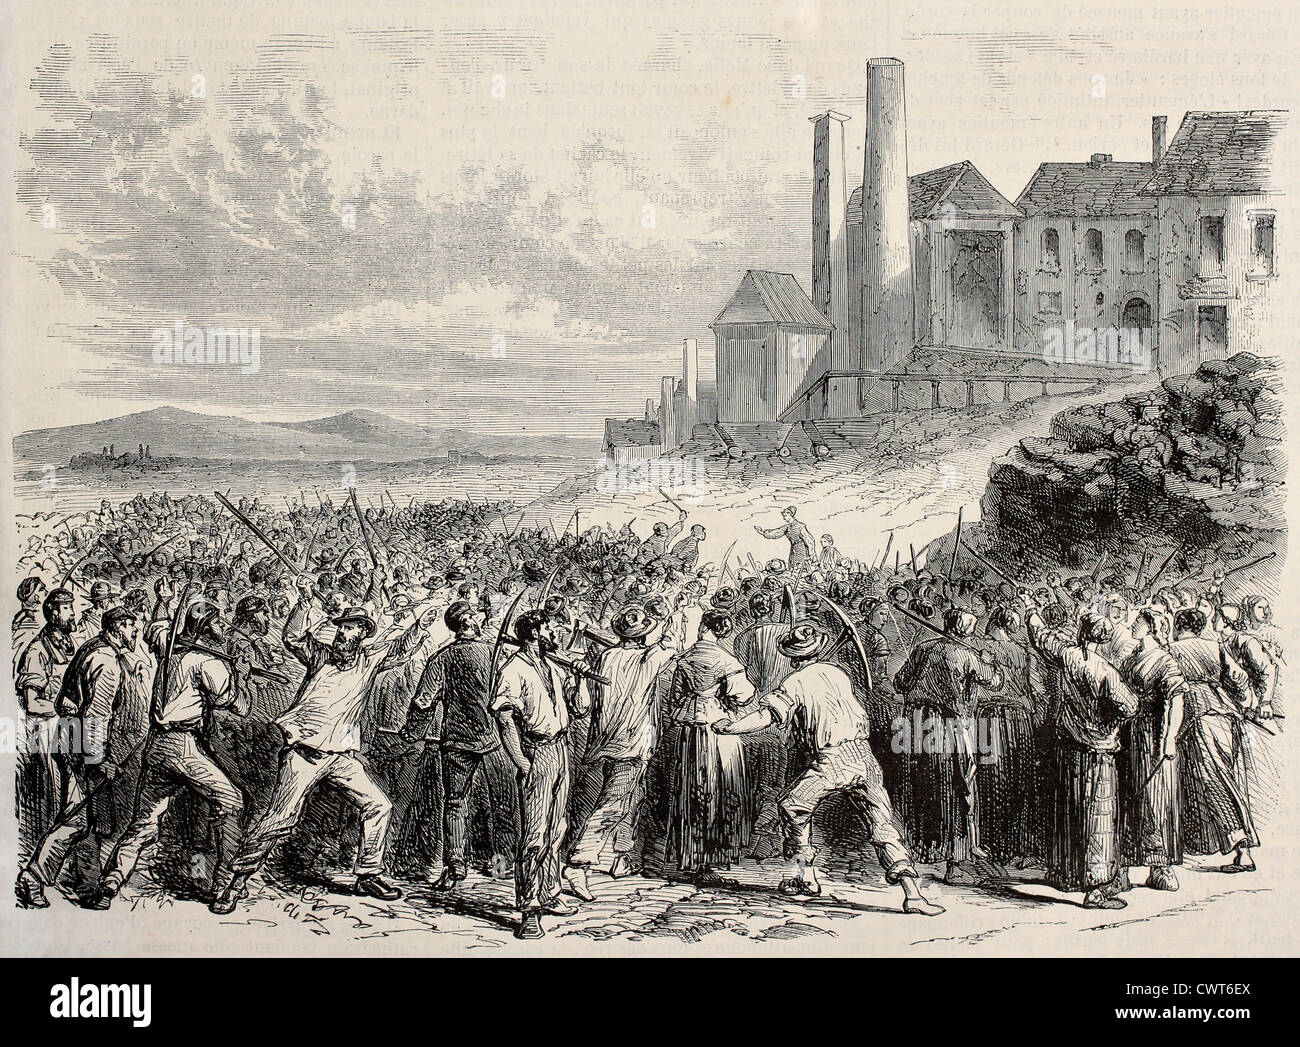 Workers riot at Hazard cool mine - Stock Image